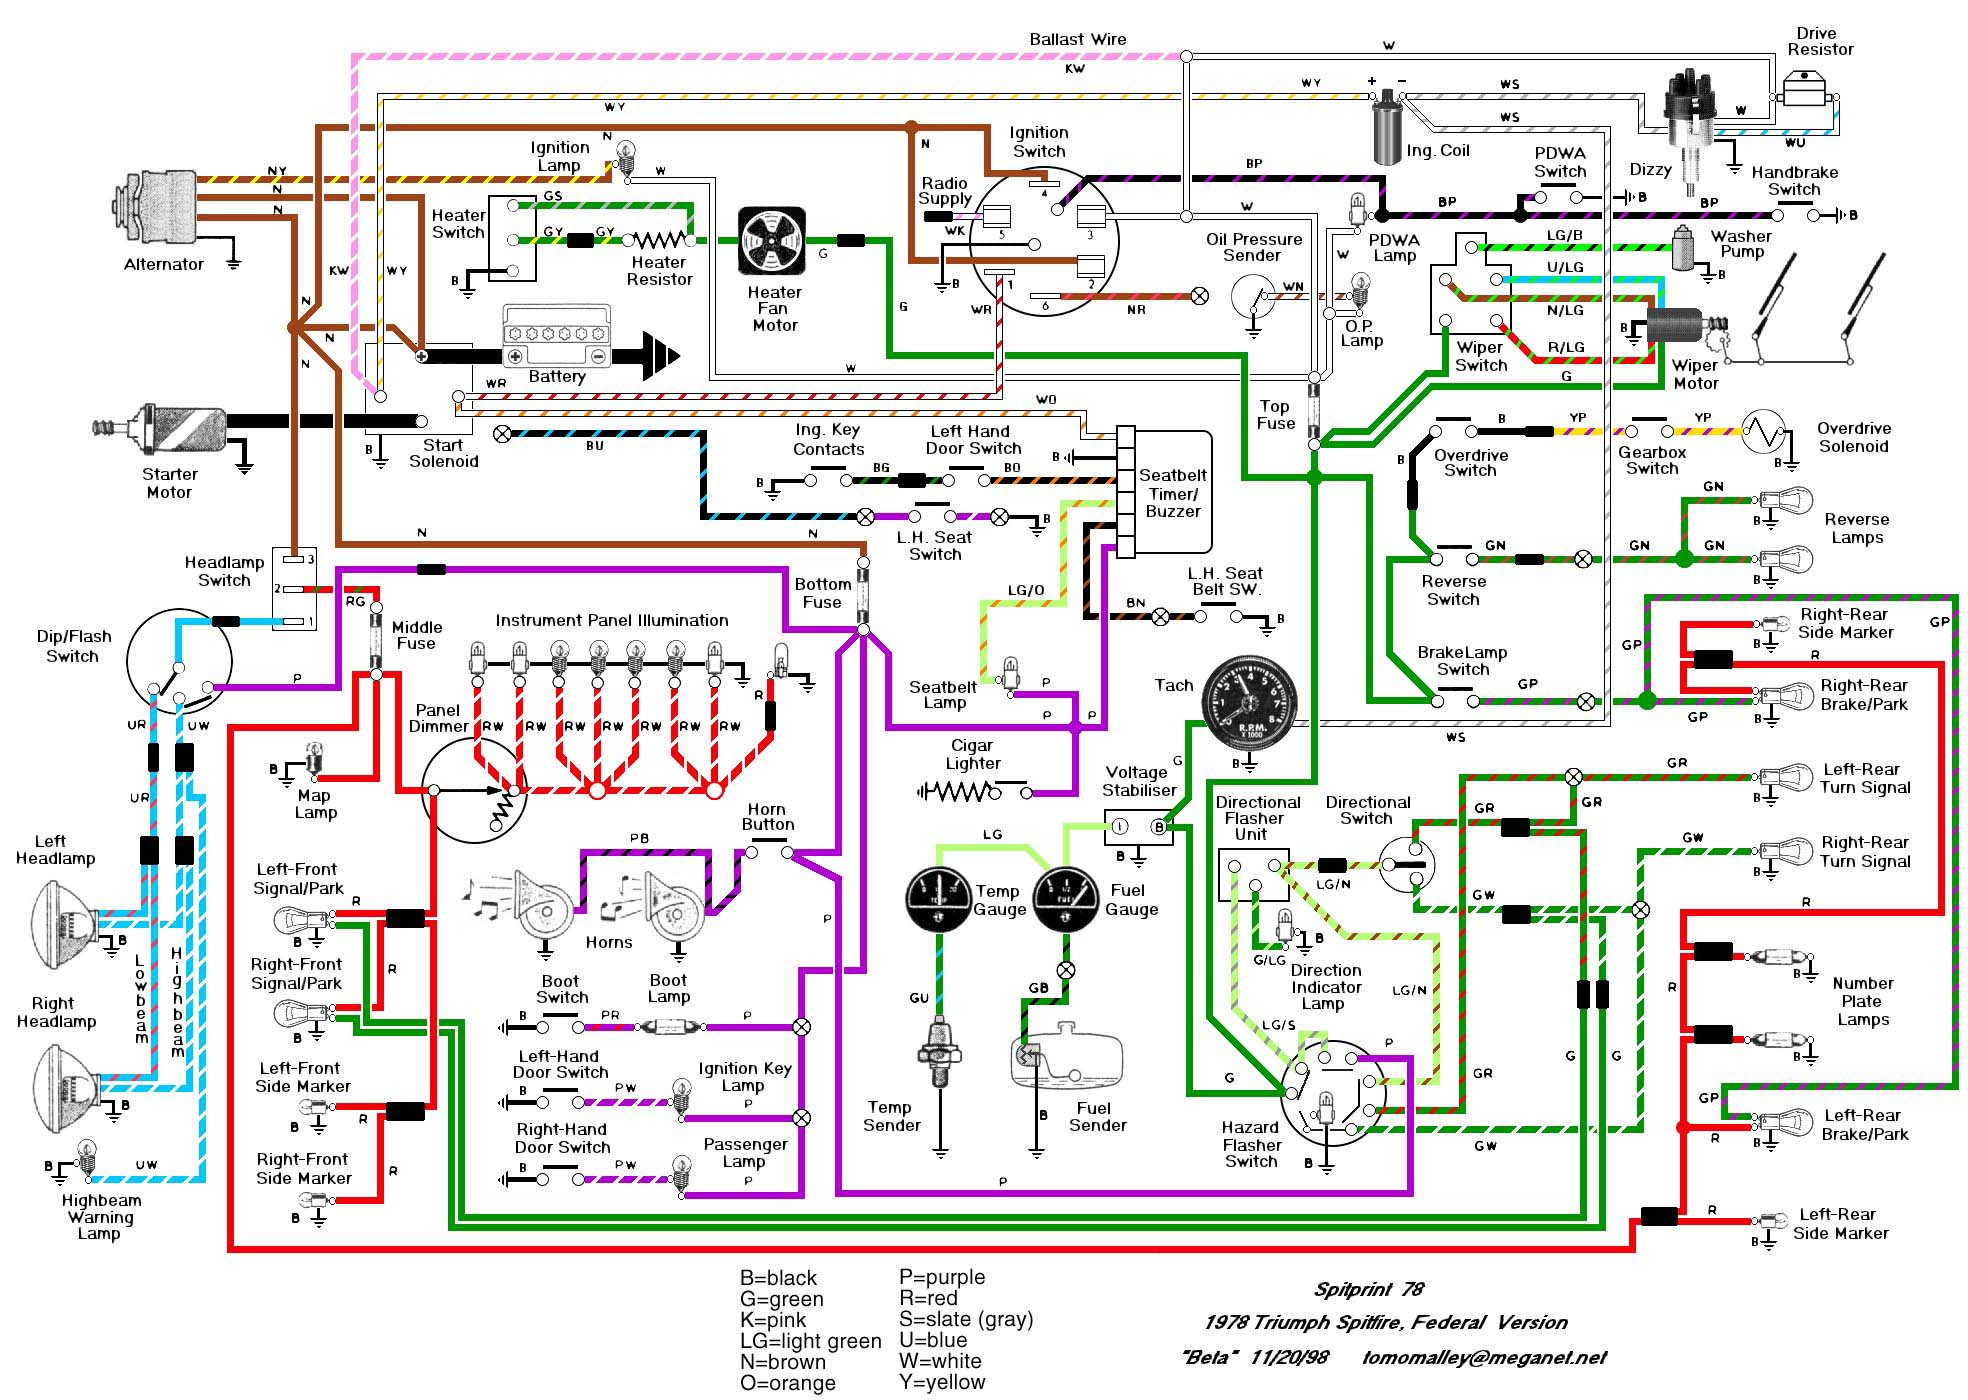 1986 Camaro Overdrive Wiring Diagram Schematic Data Diagrams 1994 1974 Monte Carlo Find U2022 Rh Empcom Co 1985 Z28 2001 V6 Vacuum